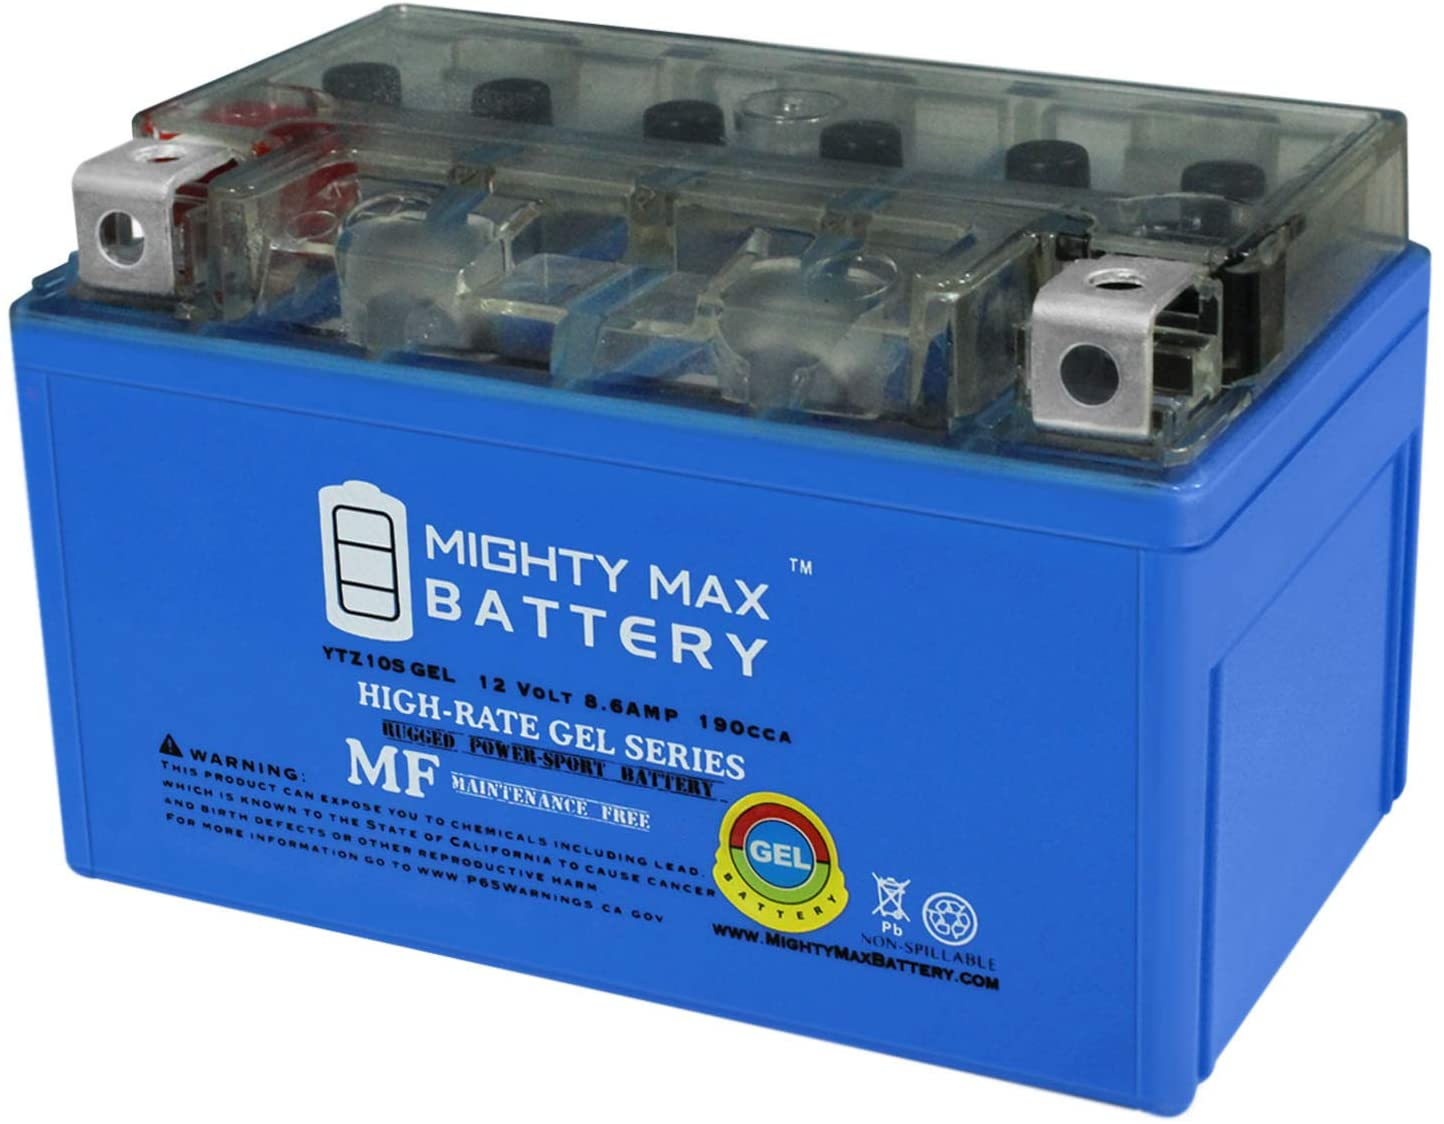 Mighty Max Battery 12V 8.6AH 190CCA Gel Battery for MV Agusta Brutale 2006-2009 910 Brand Product